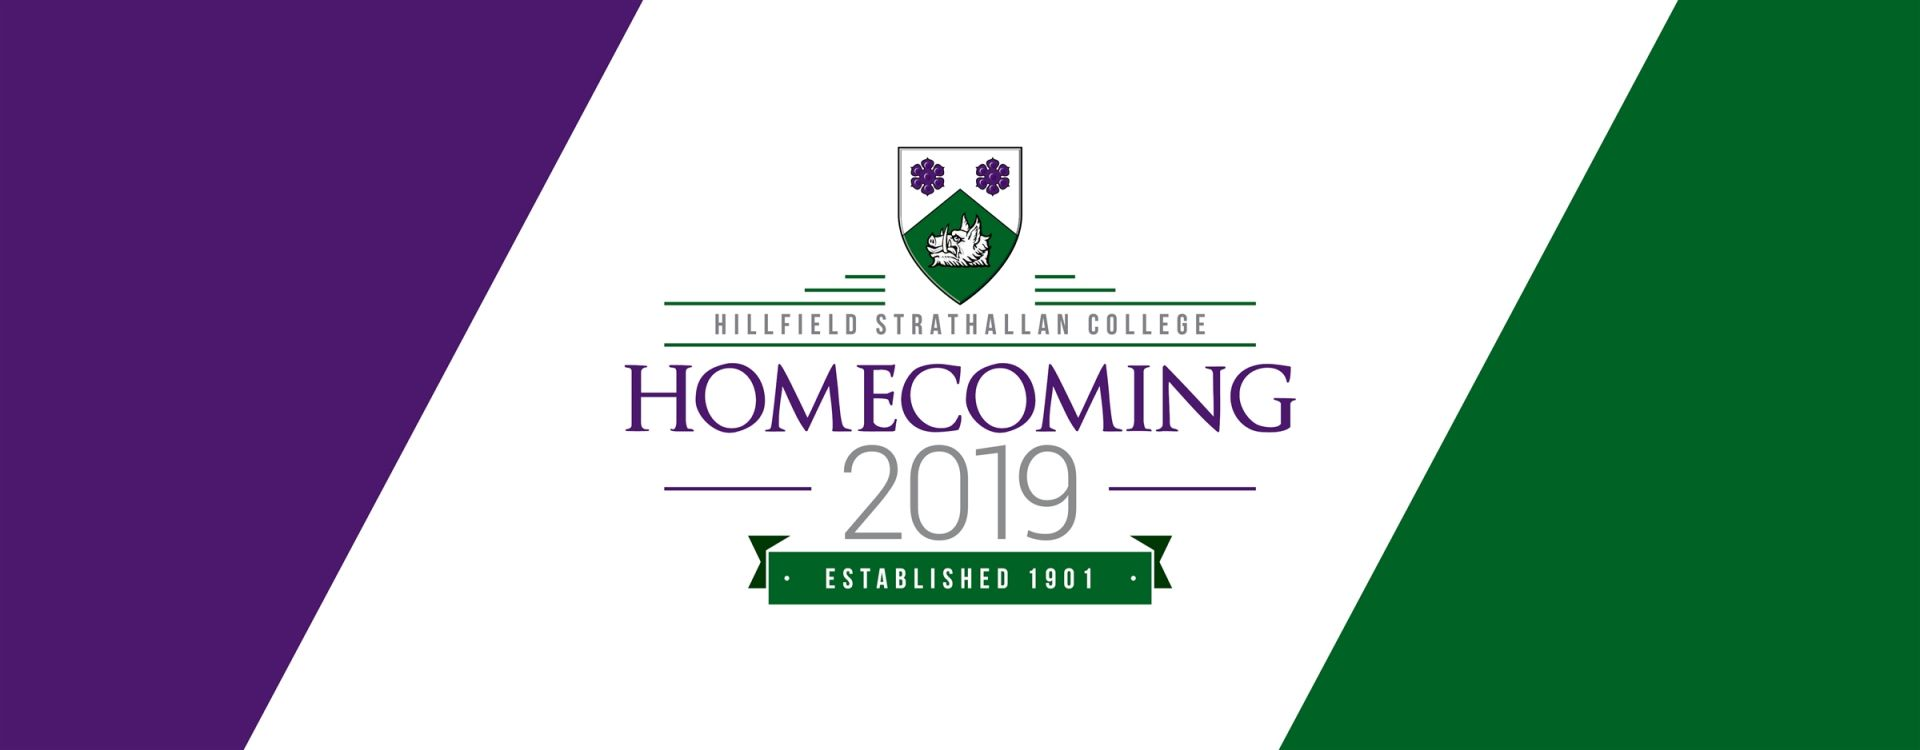 homecoming2019_attend